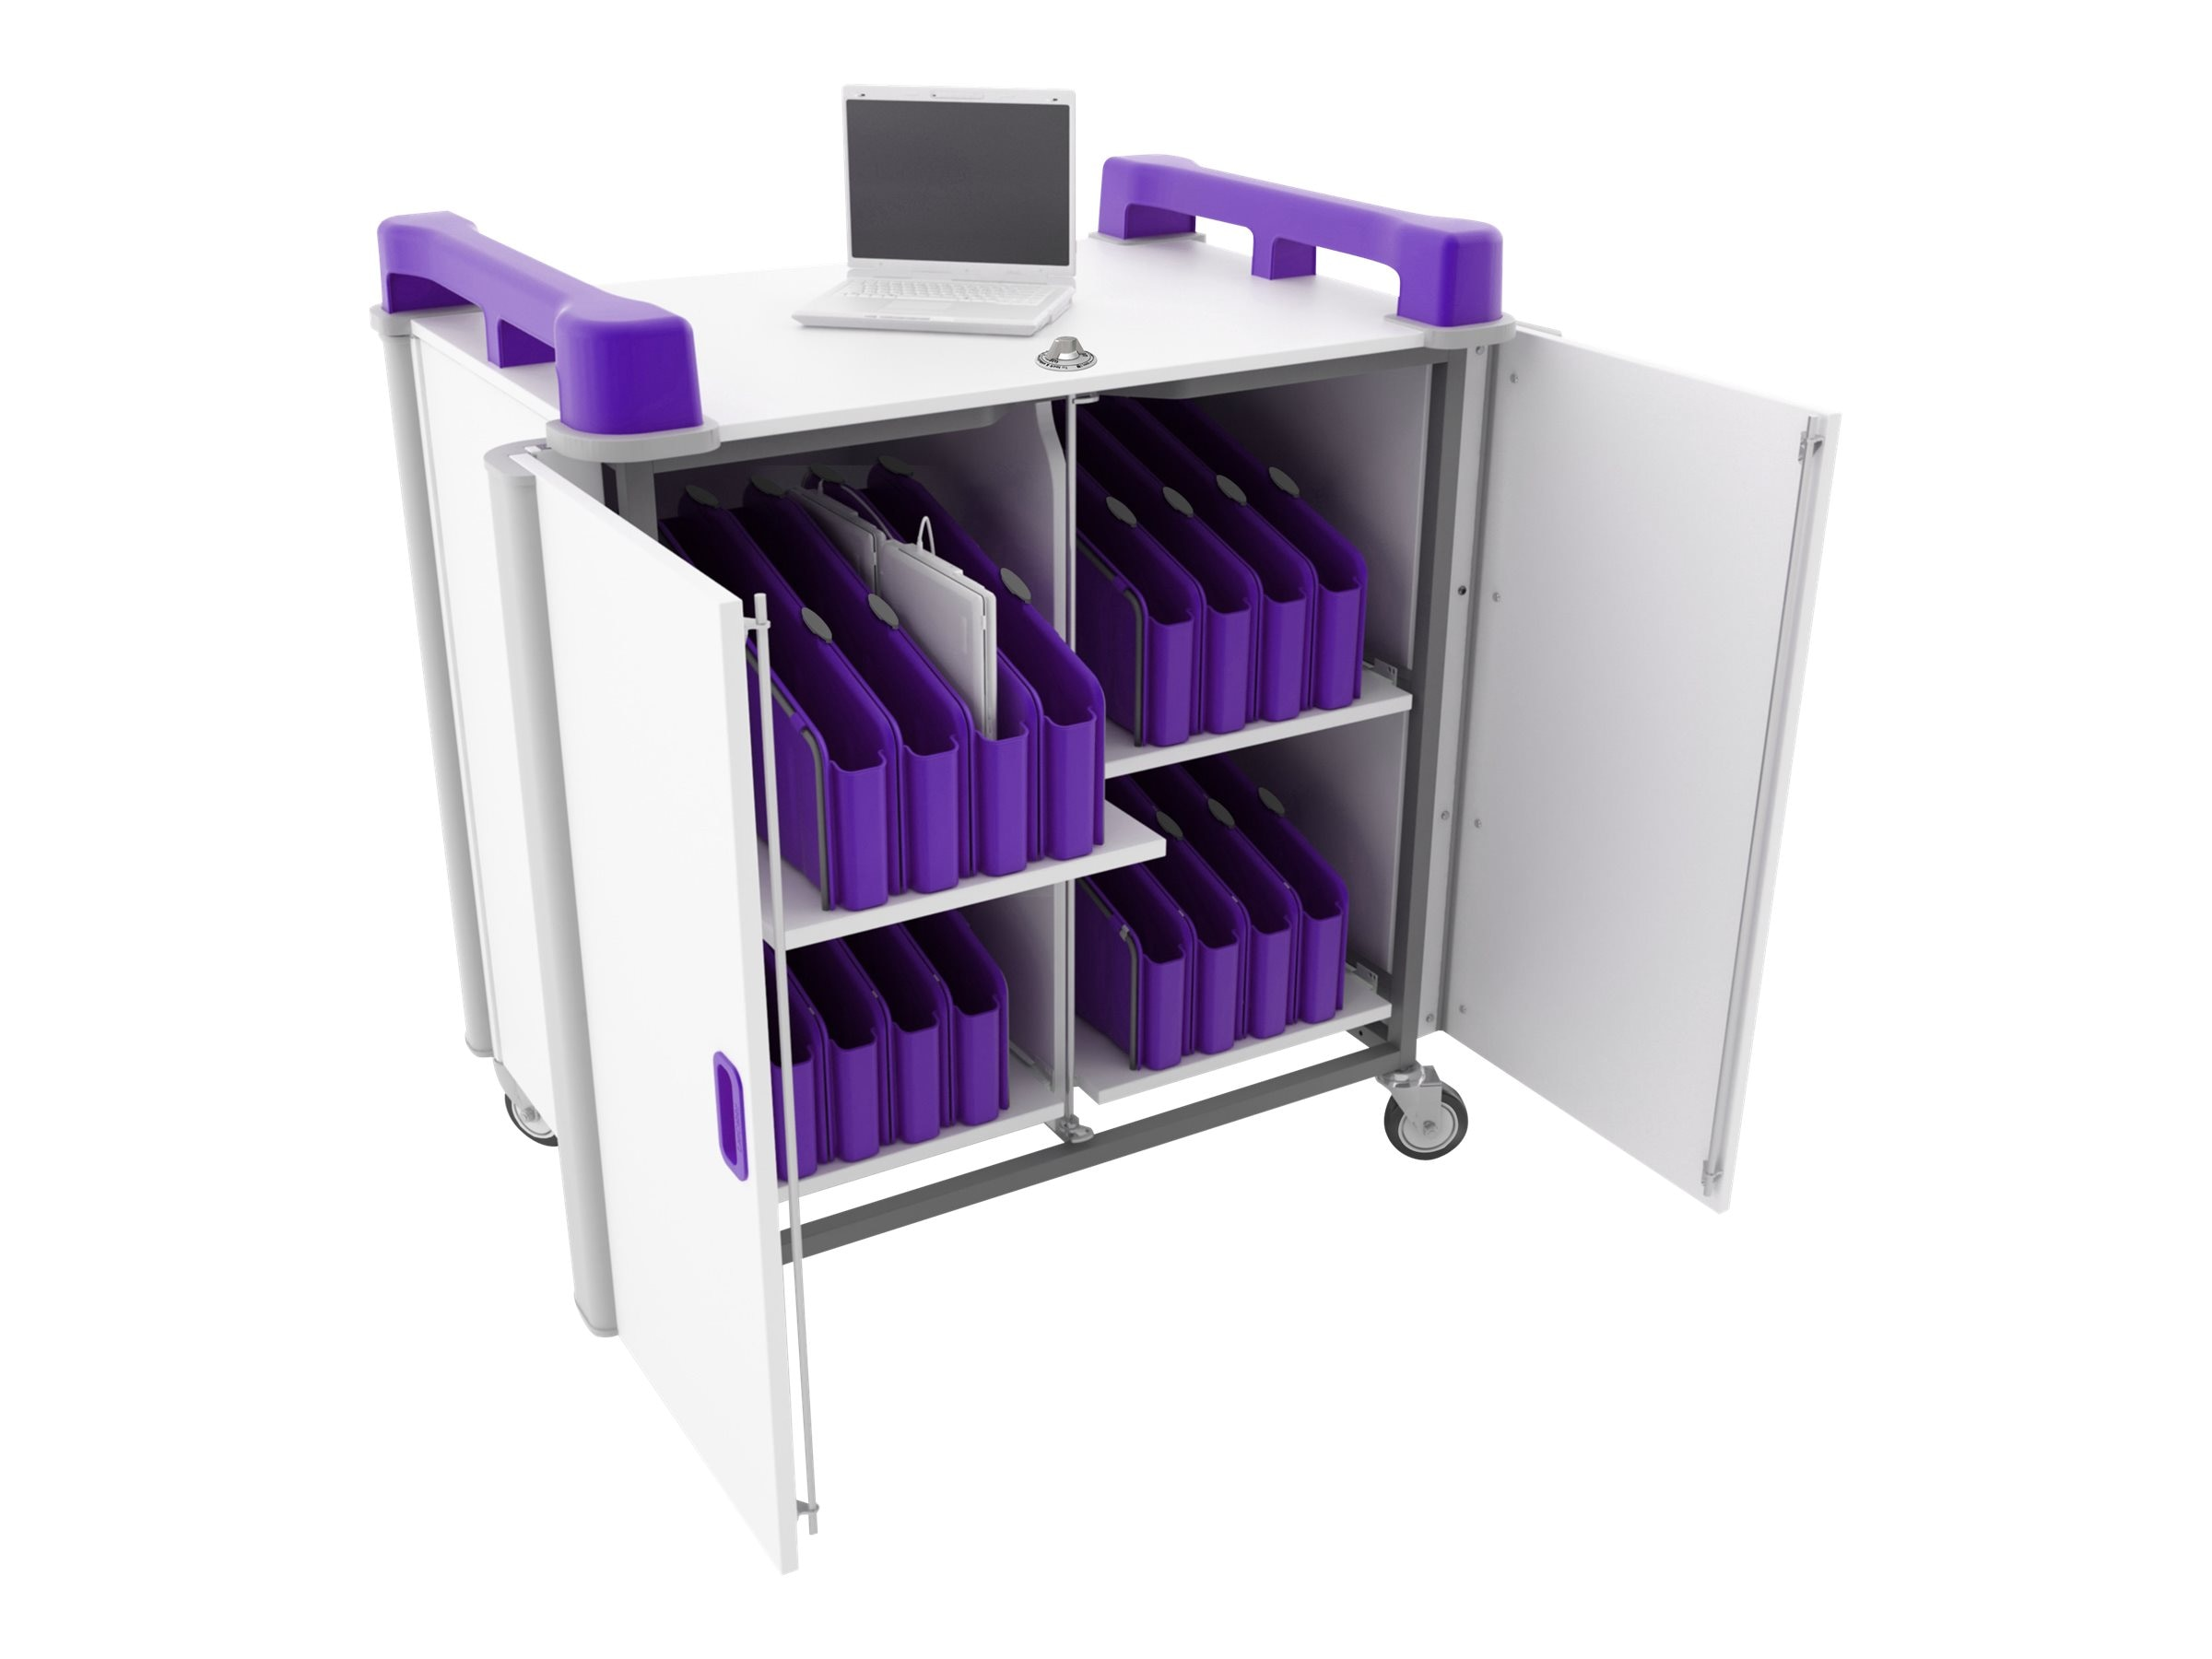 LapCabby 32-Port Mini Laptop Vertical Charging Trolley, Purple, LAPM32VPU/USA